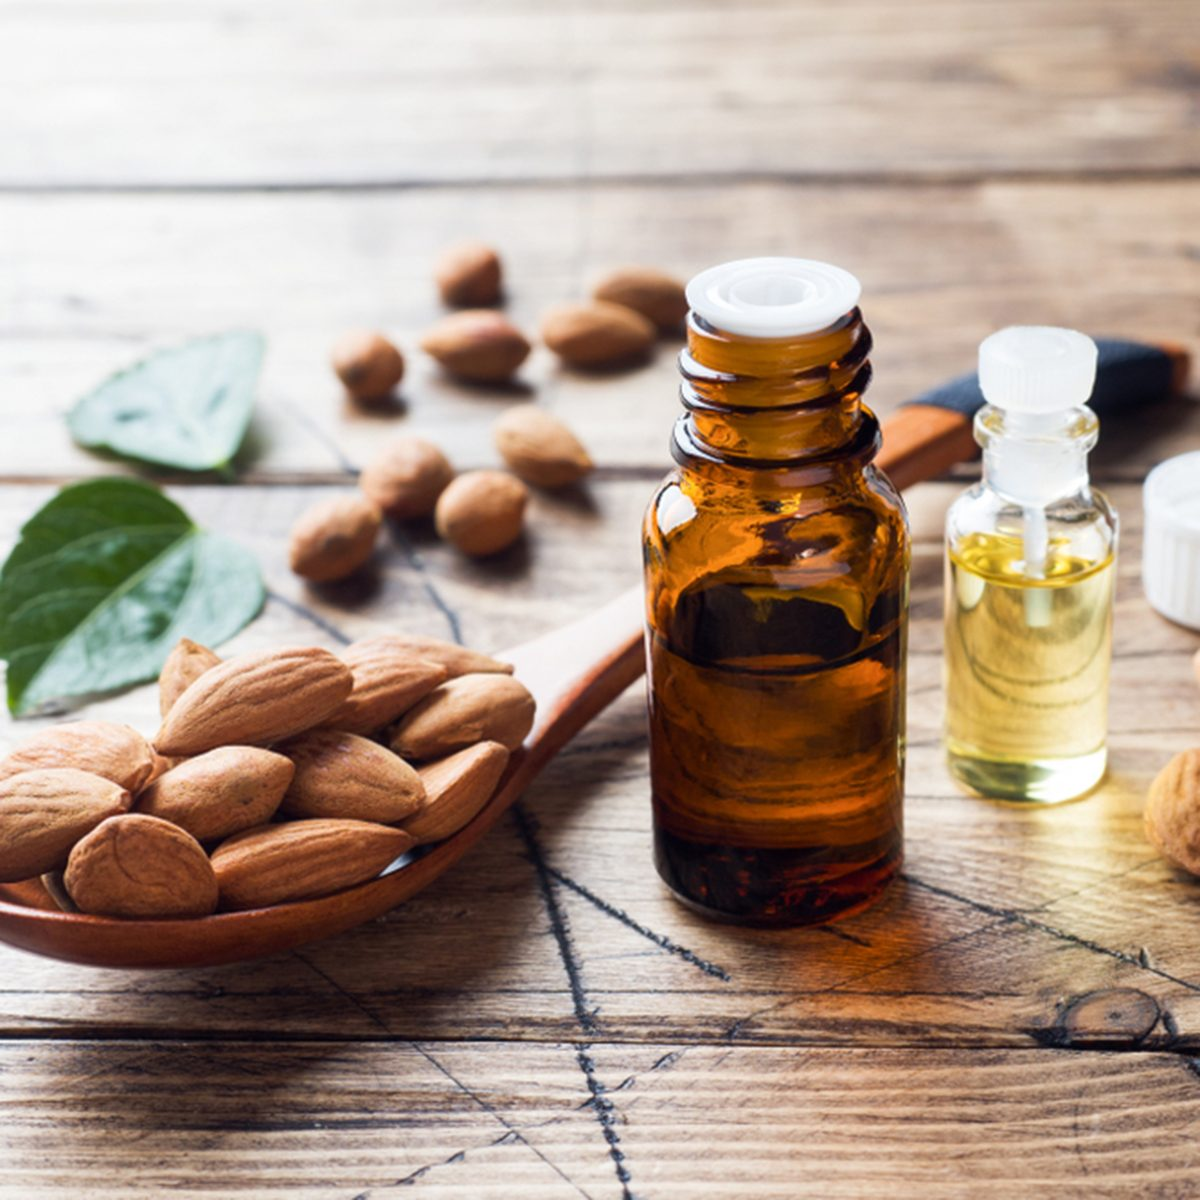 Almond oil in bottle on wooden background.